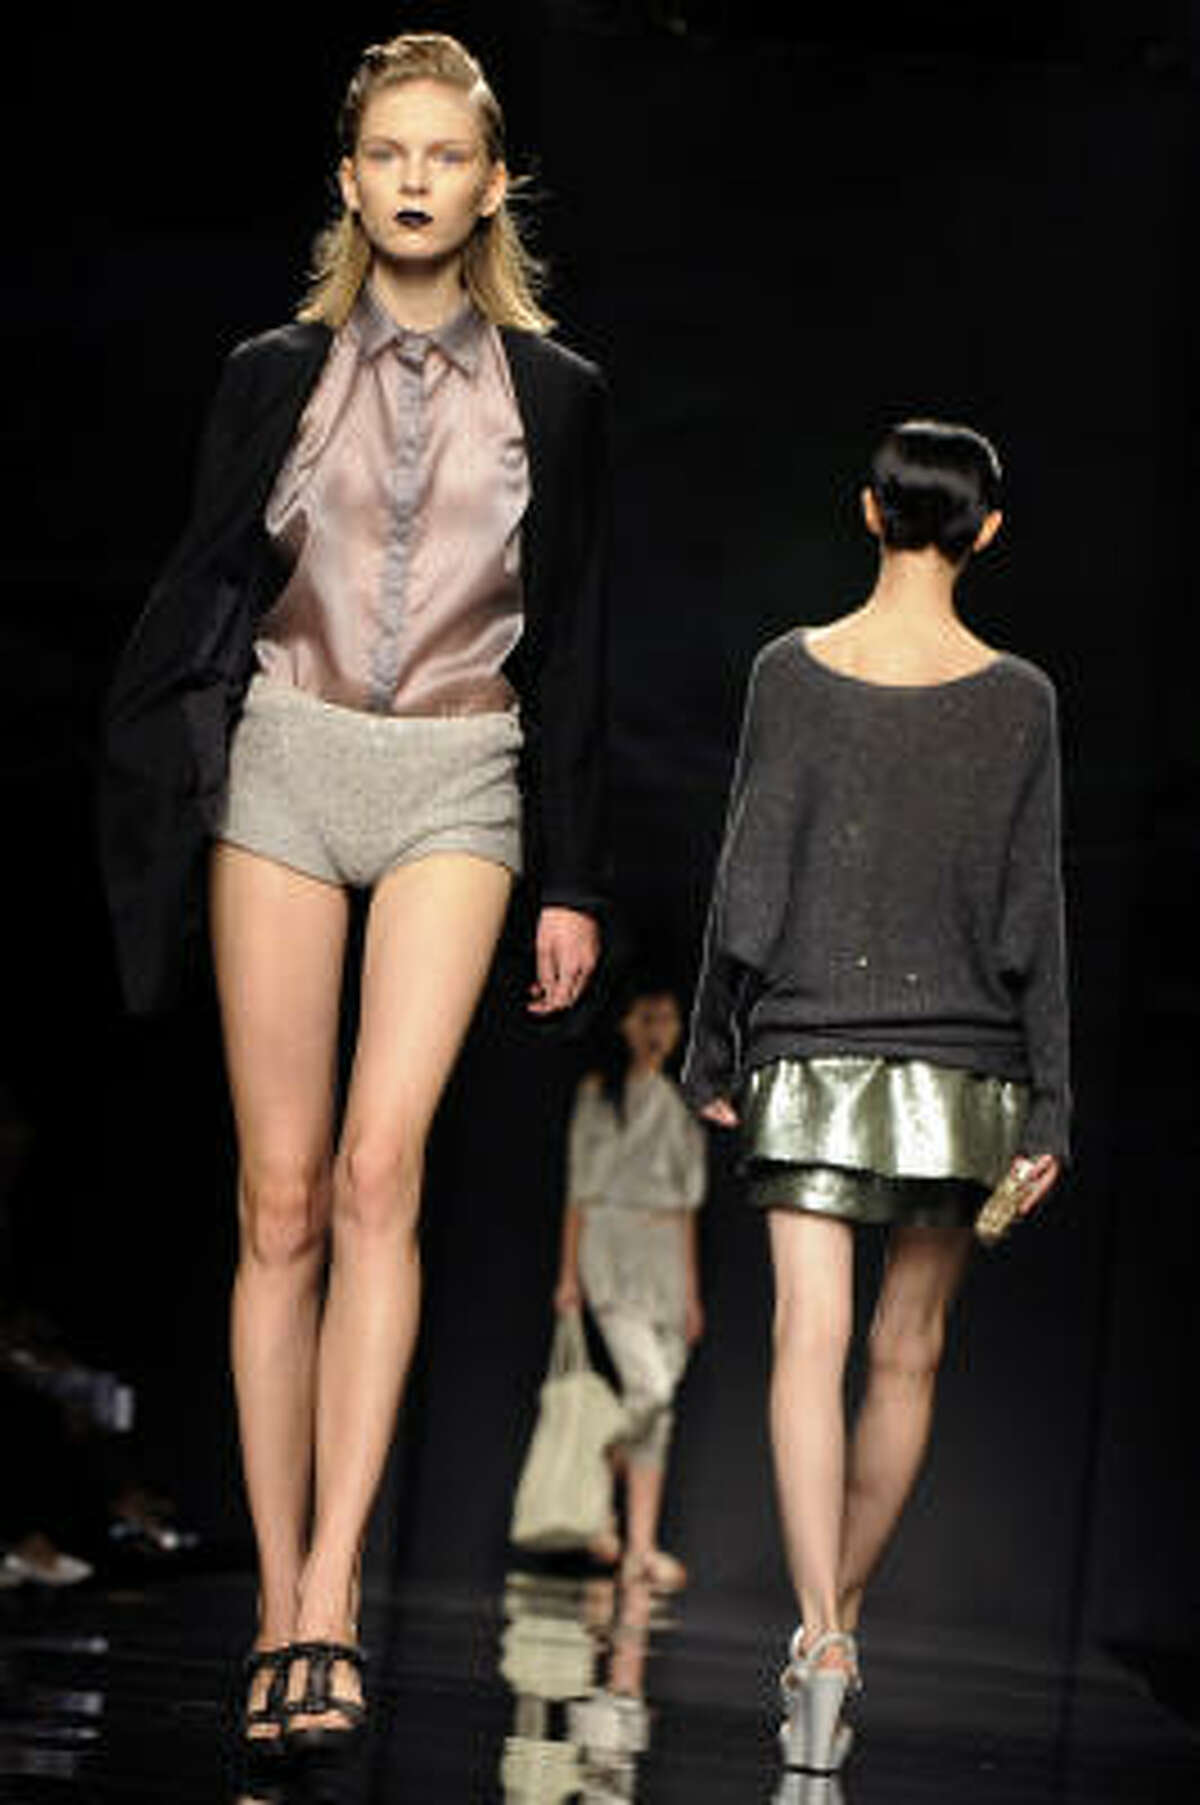 Anteprima Spring/Summer 2010 ready-to-wear collection